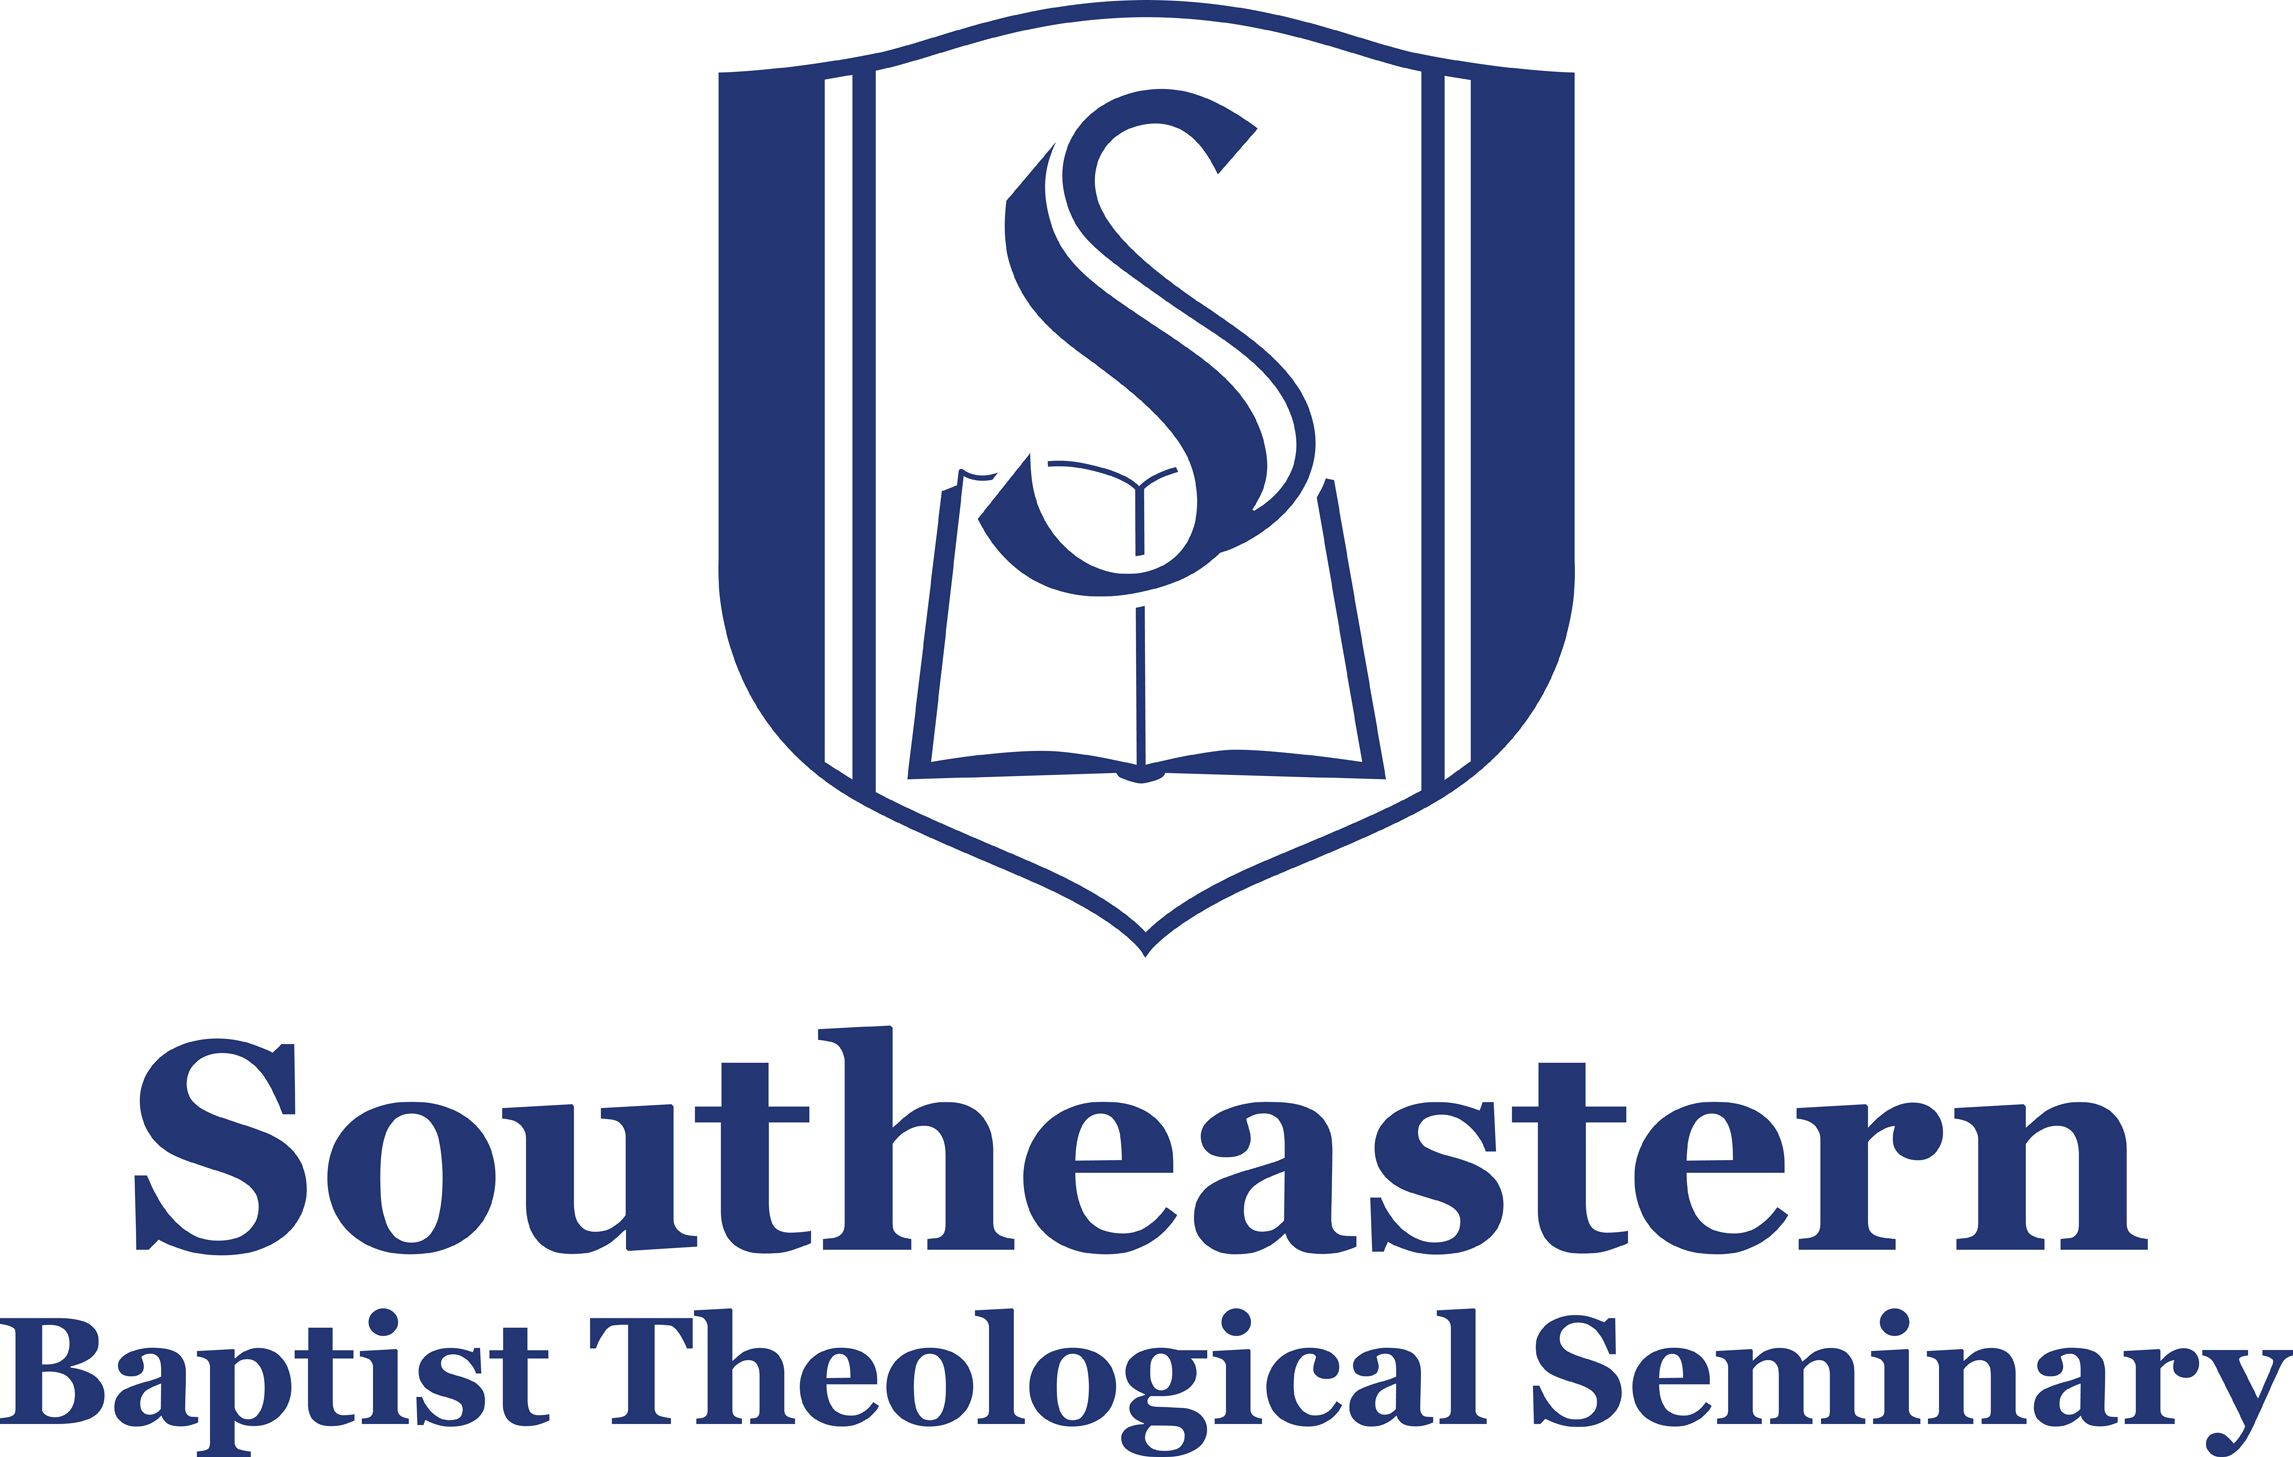 Southeaster Baptist Theological Seminary